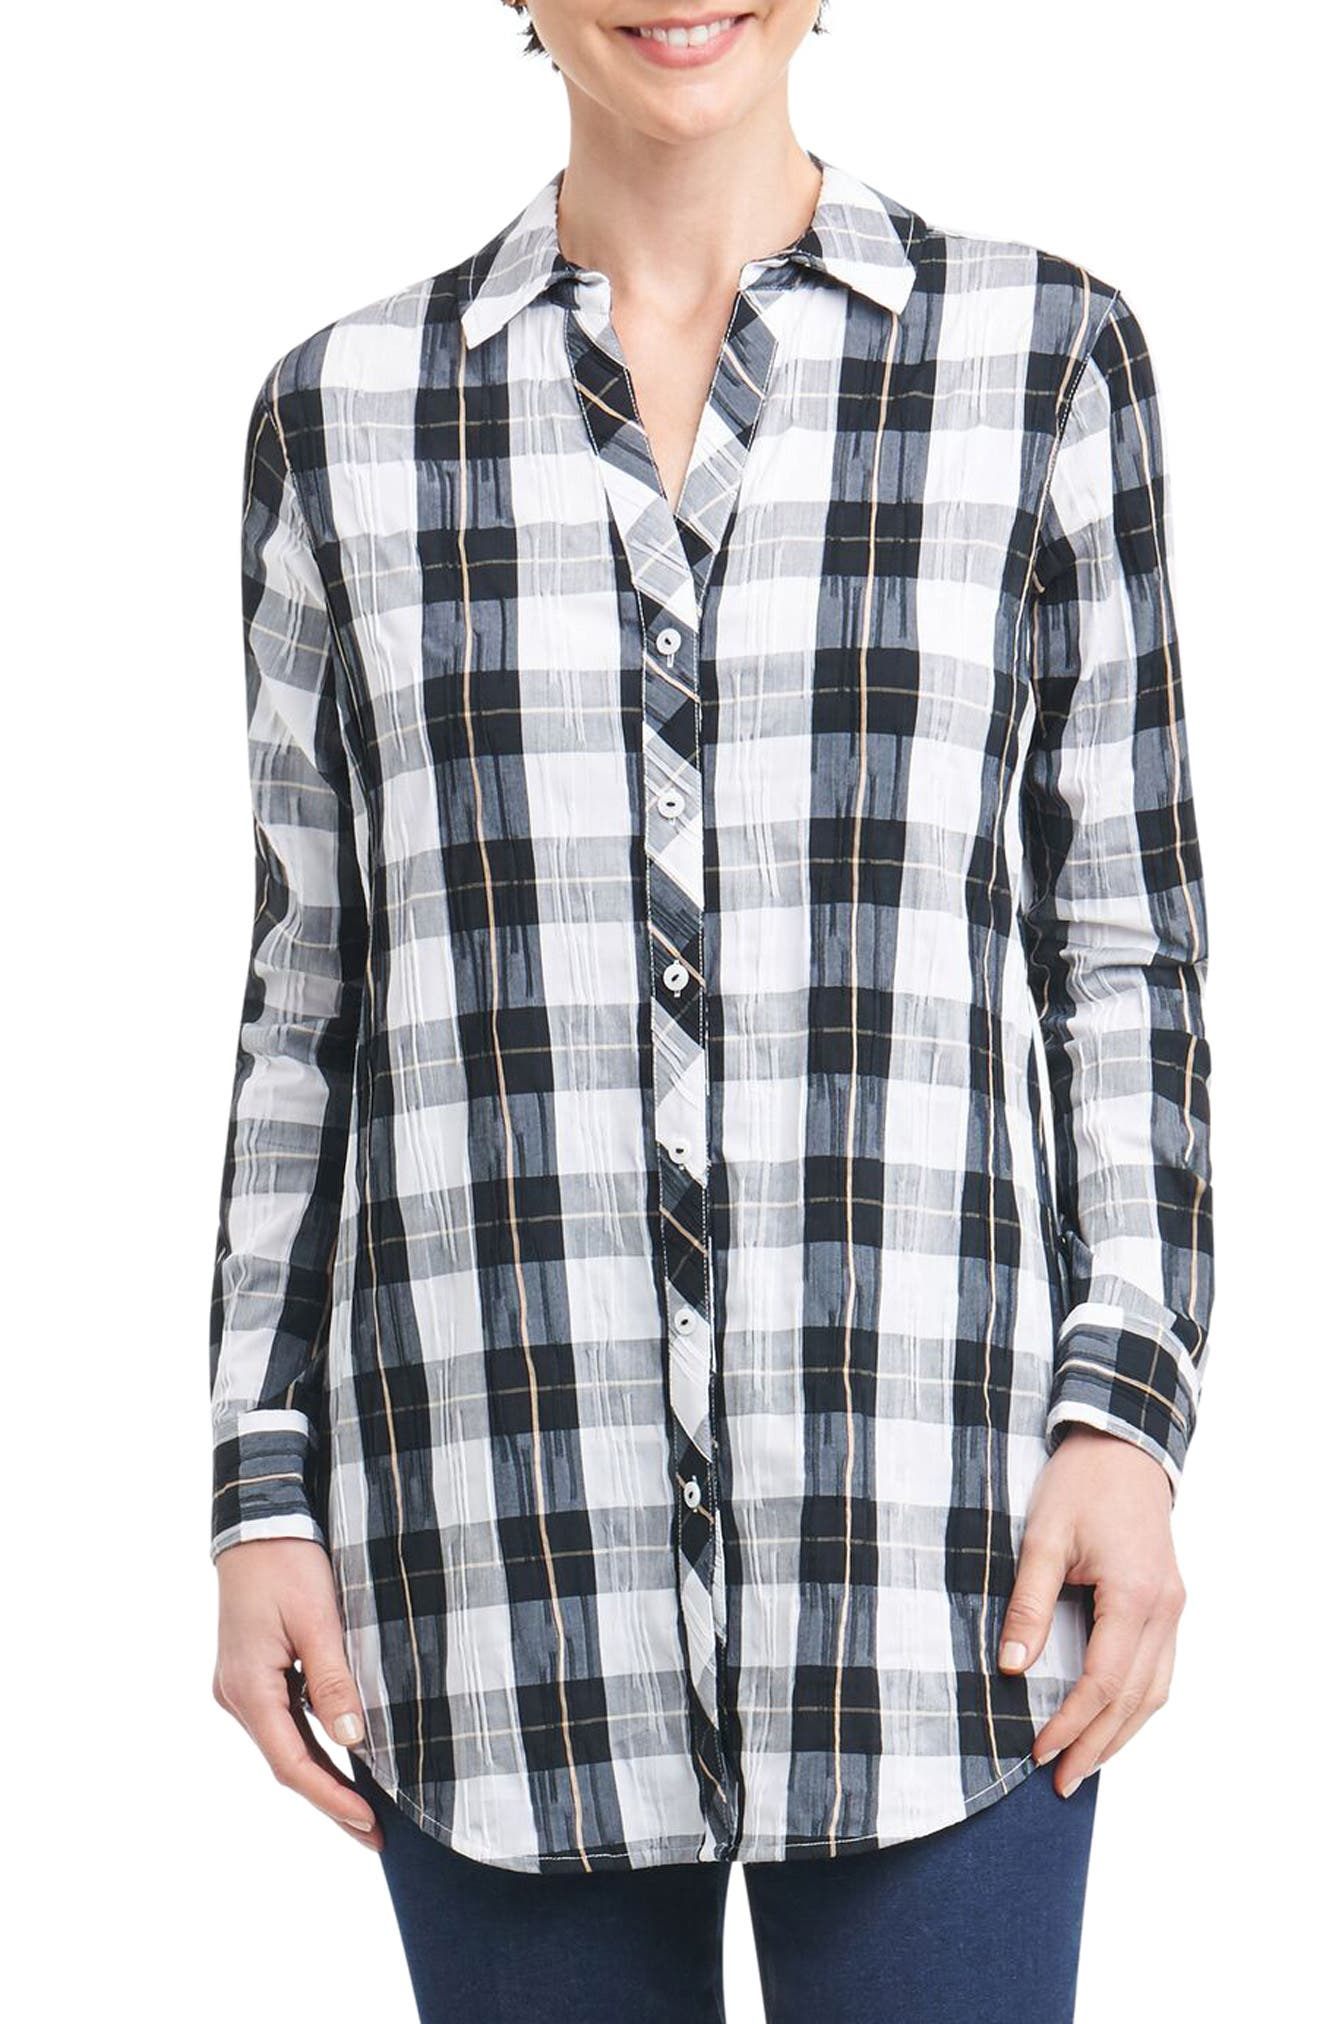 Main Image - Foxcroft Fay Crinkle Plaid Stretch Cotton Blend Tunic Shirt (Regular & Petite)